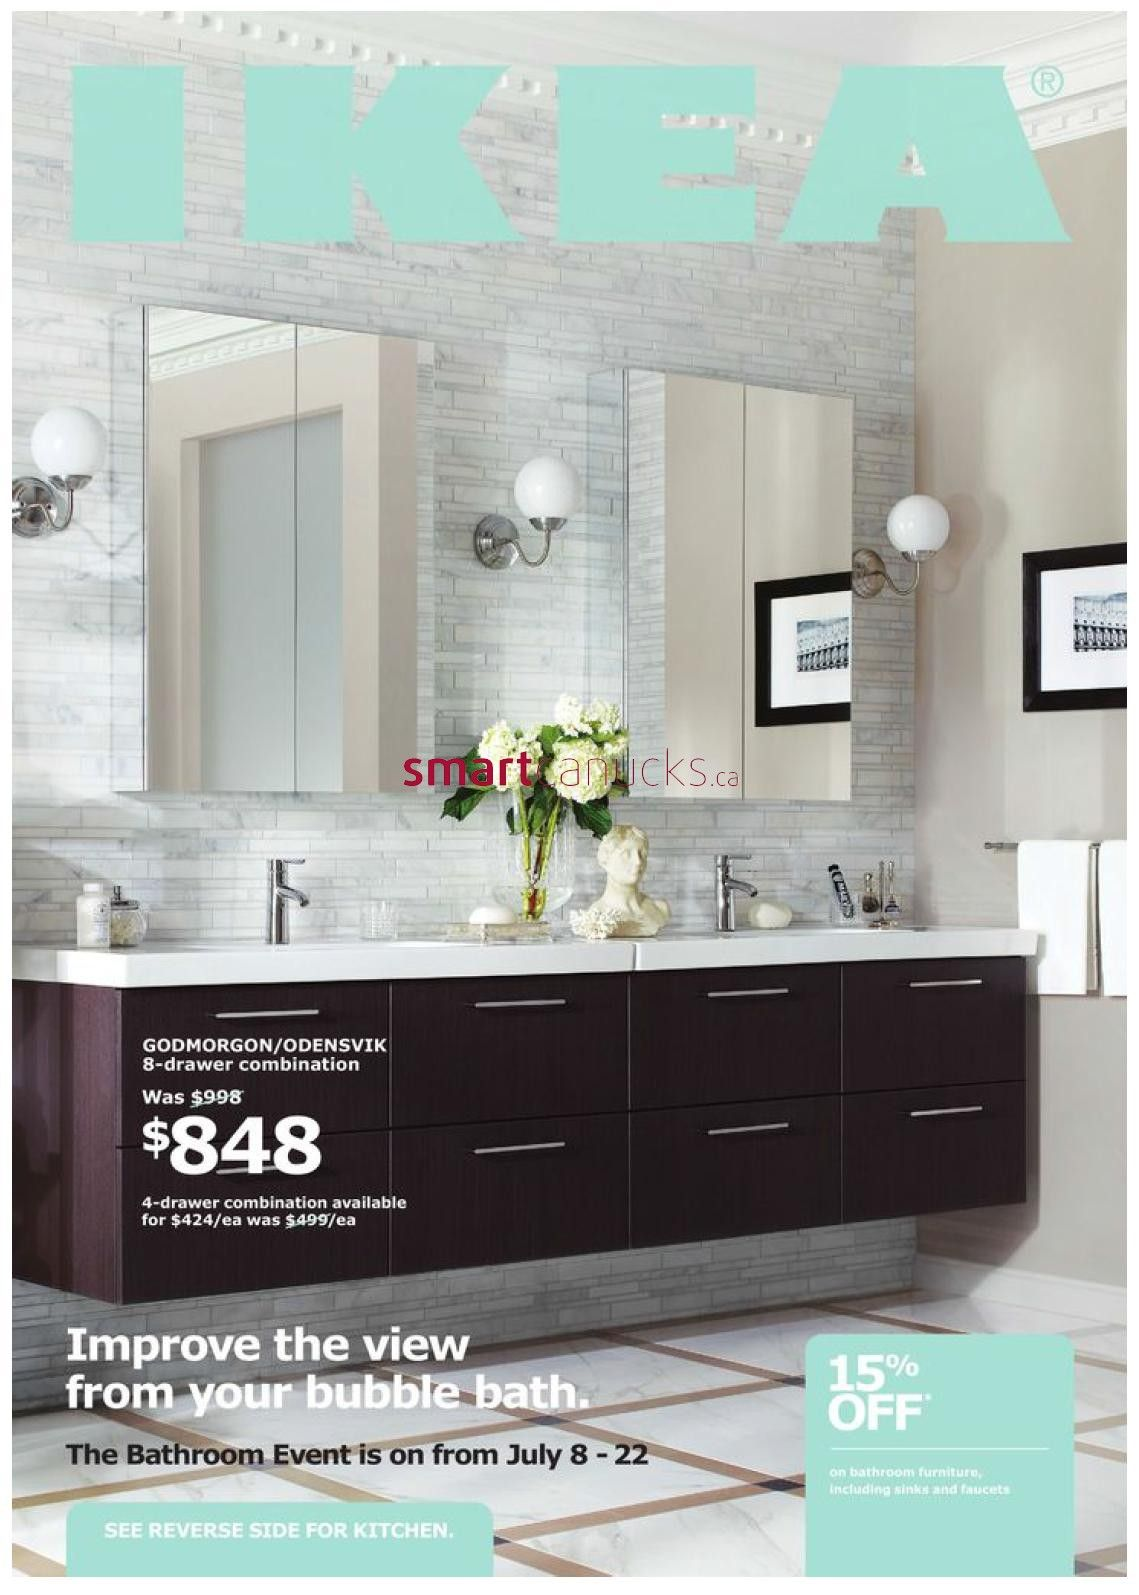 just half ikea godmorgonodensvik sink cabinets with four drawers and lillholmen wall lamps and dalskar bath faucets and godmorgon mirror cabinets